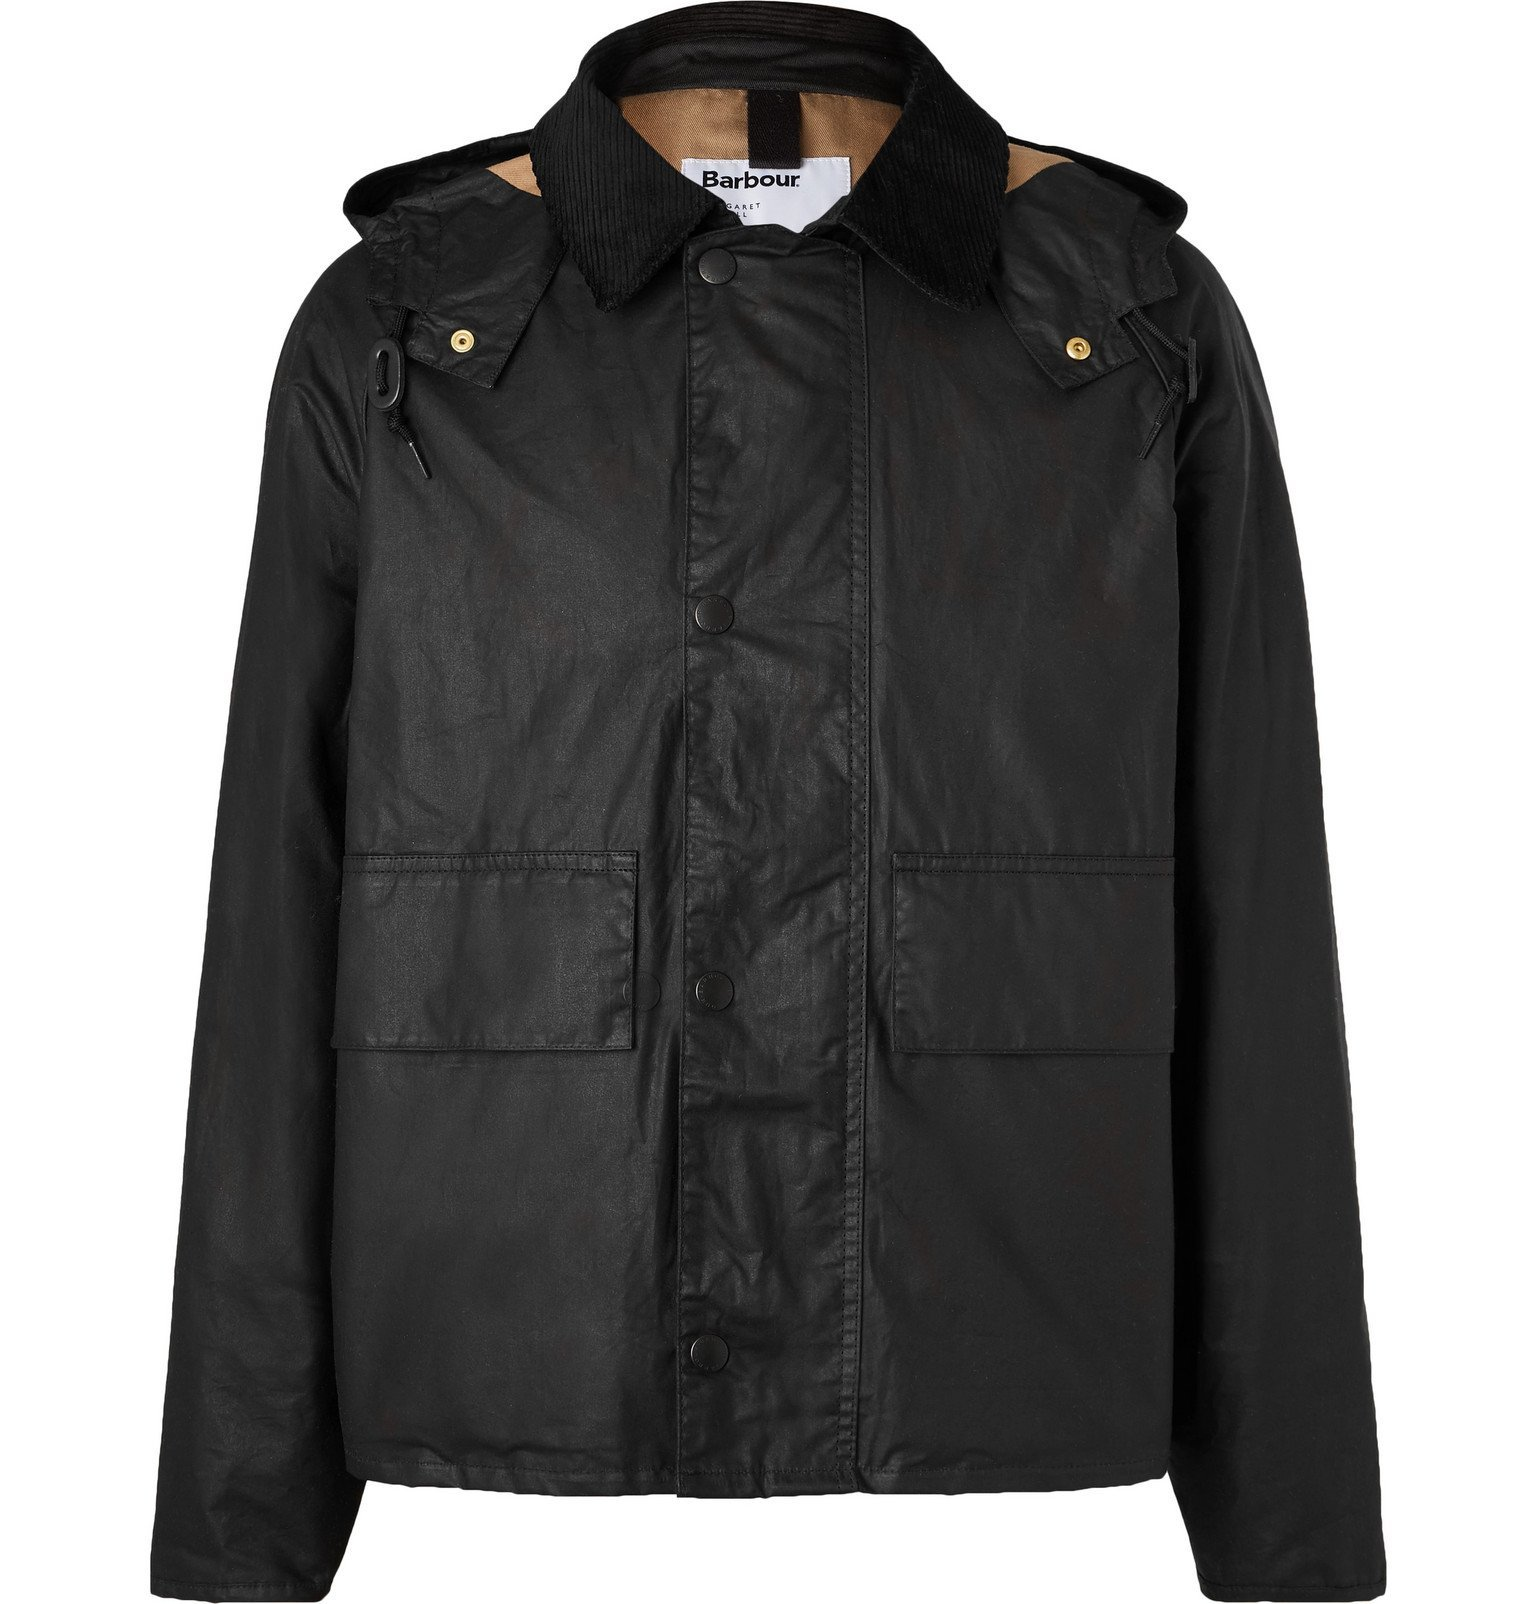 Photo: Barbour - Margaret Howell Waxed-Cotton Hooded Jacket - Black